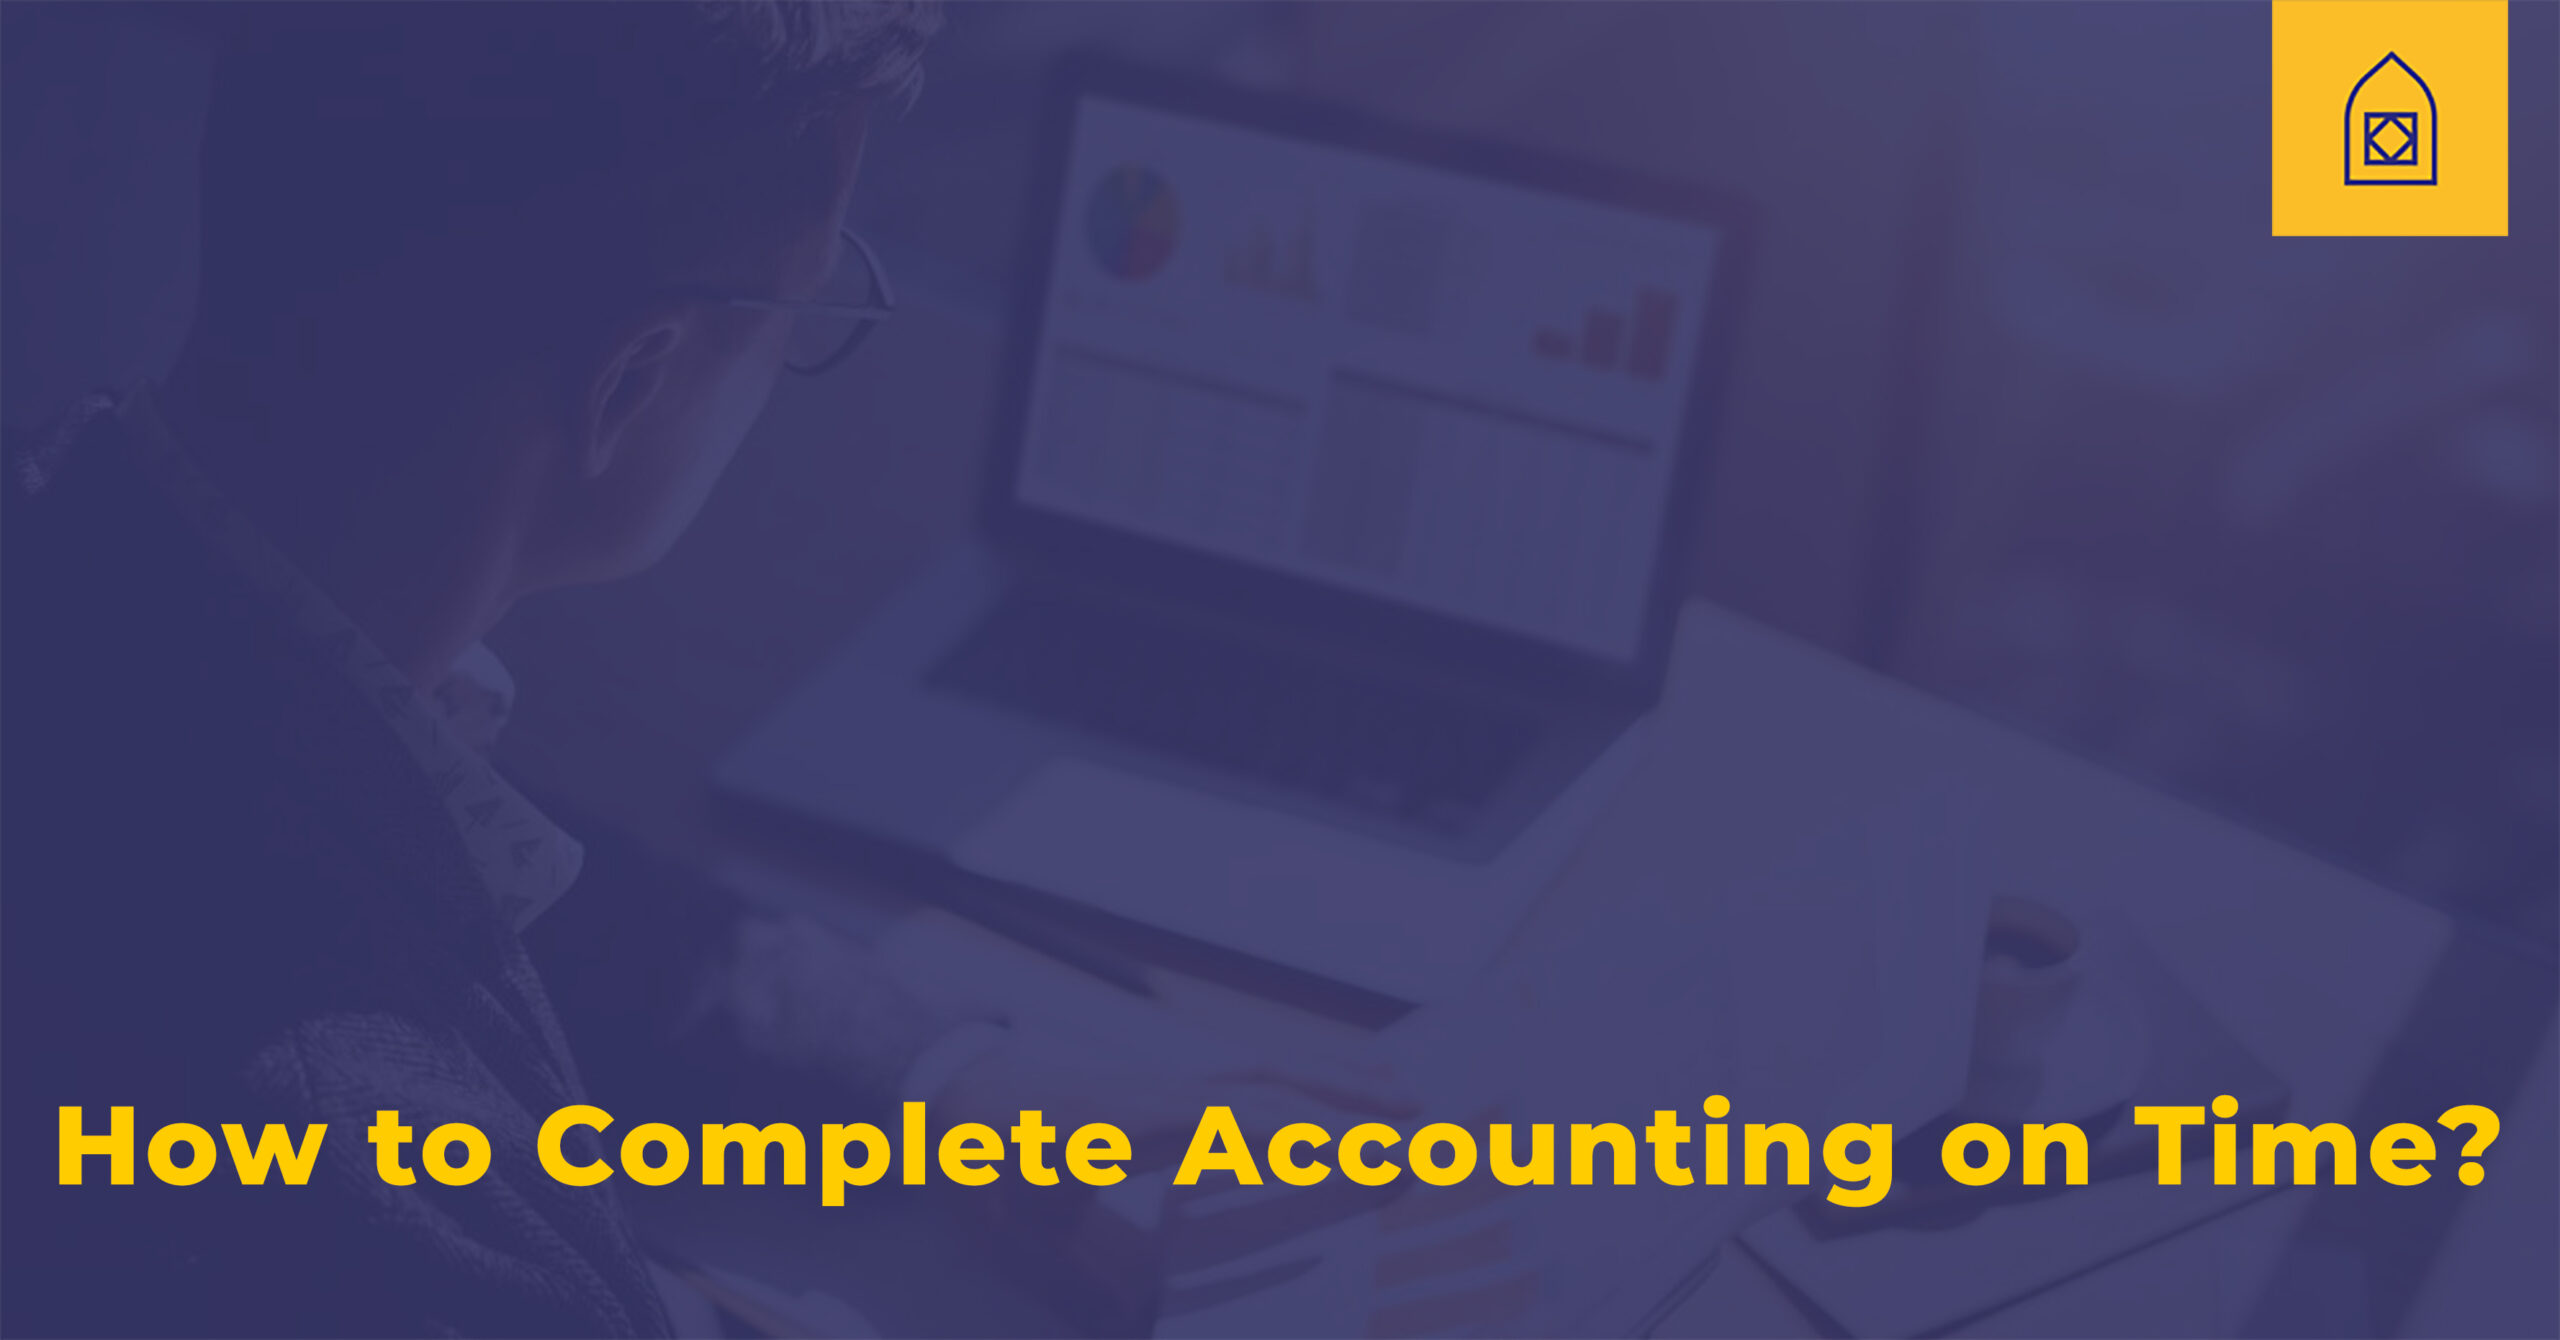 How to Complete Accounting on Time